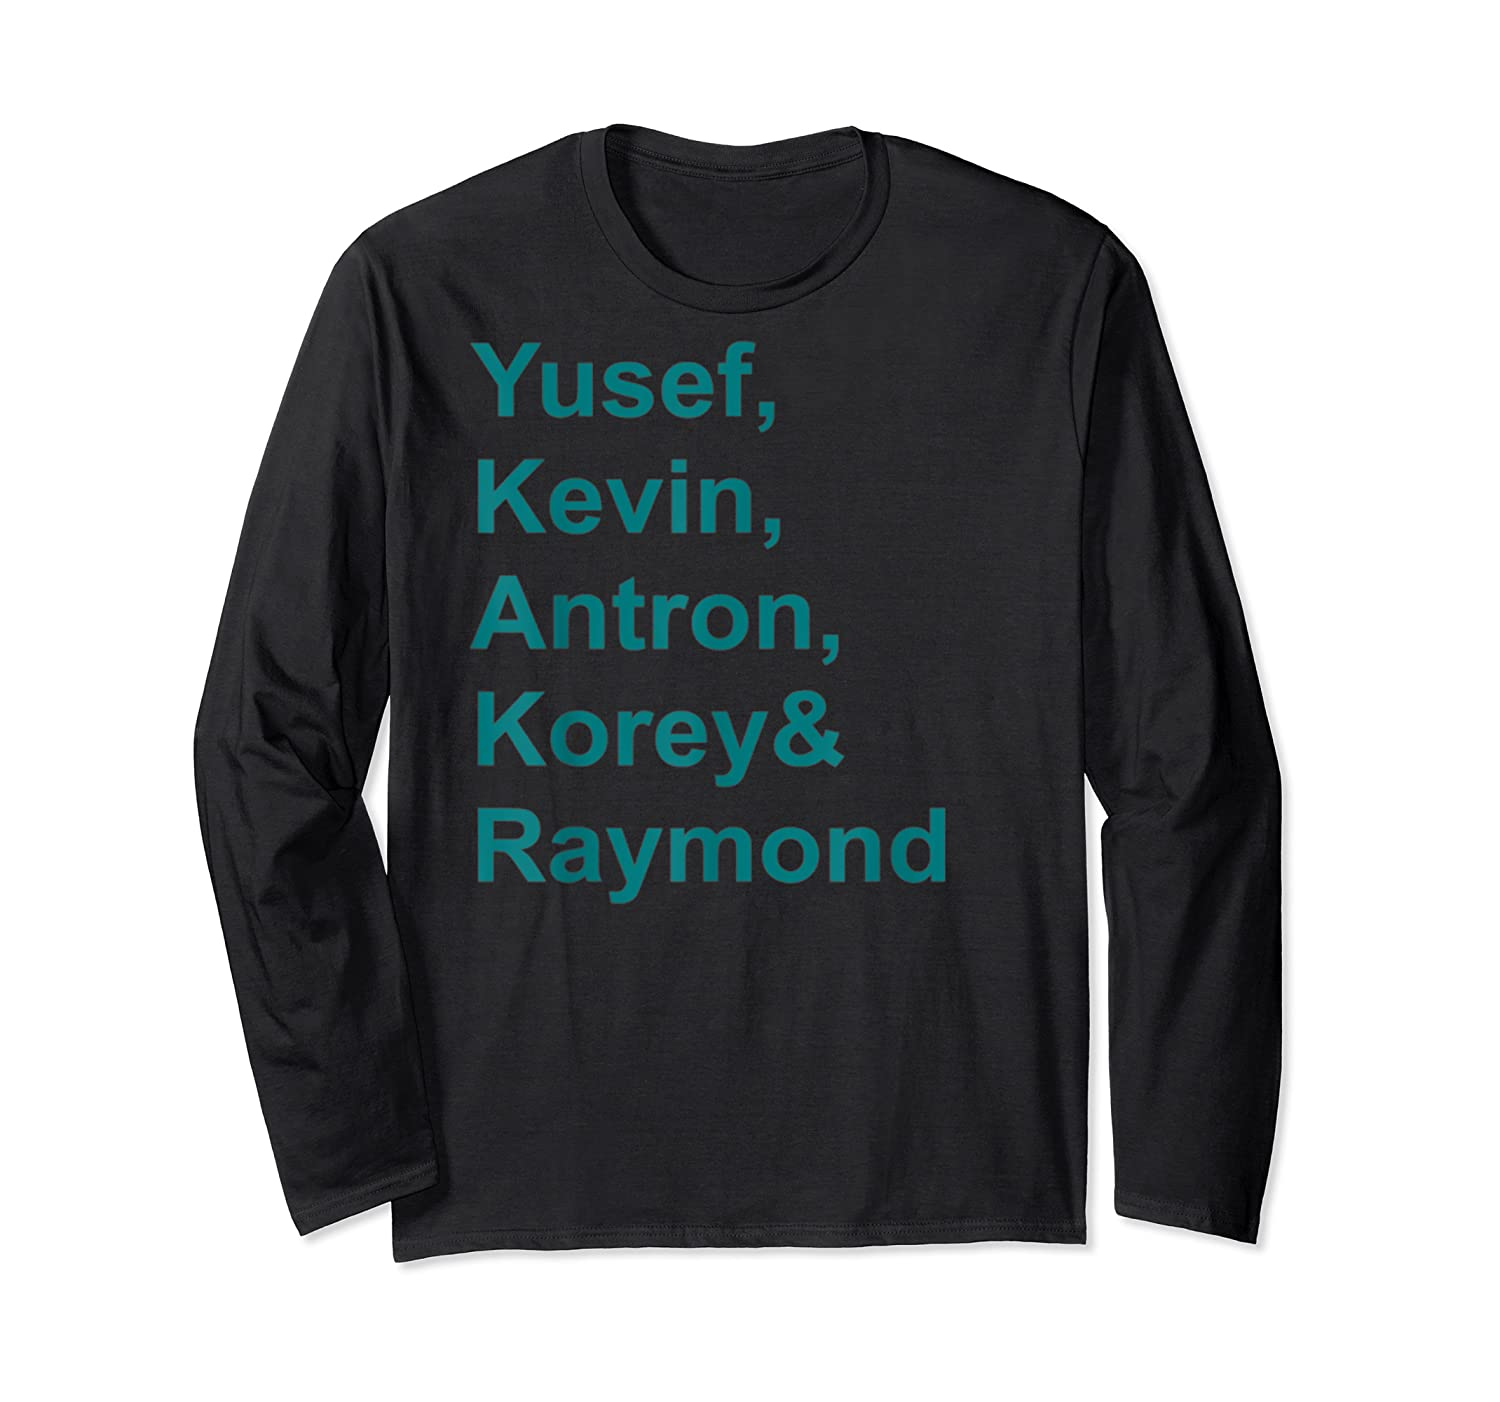 Central Park 5 T-shirt Central Park 5 Real Story Tshirt Long Sleeve T-shirt